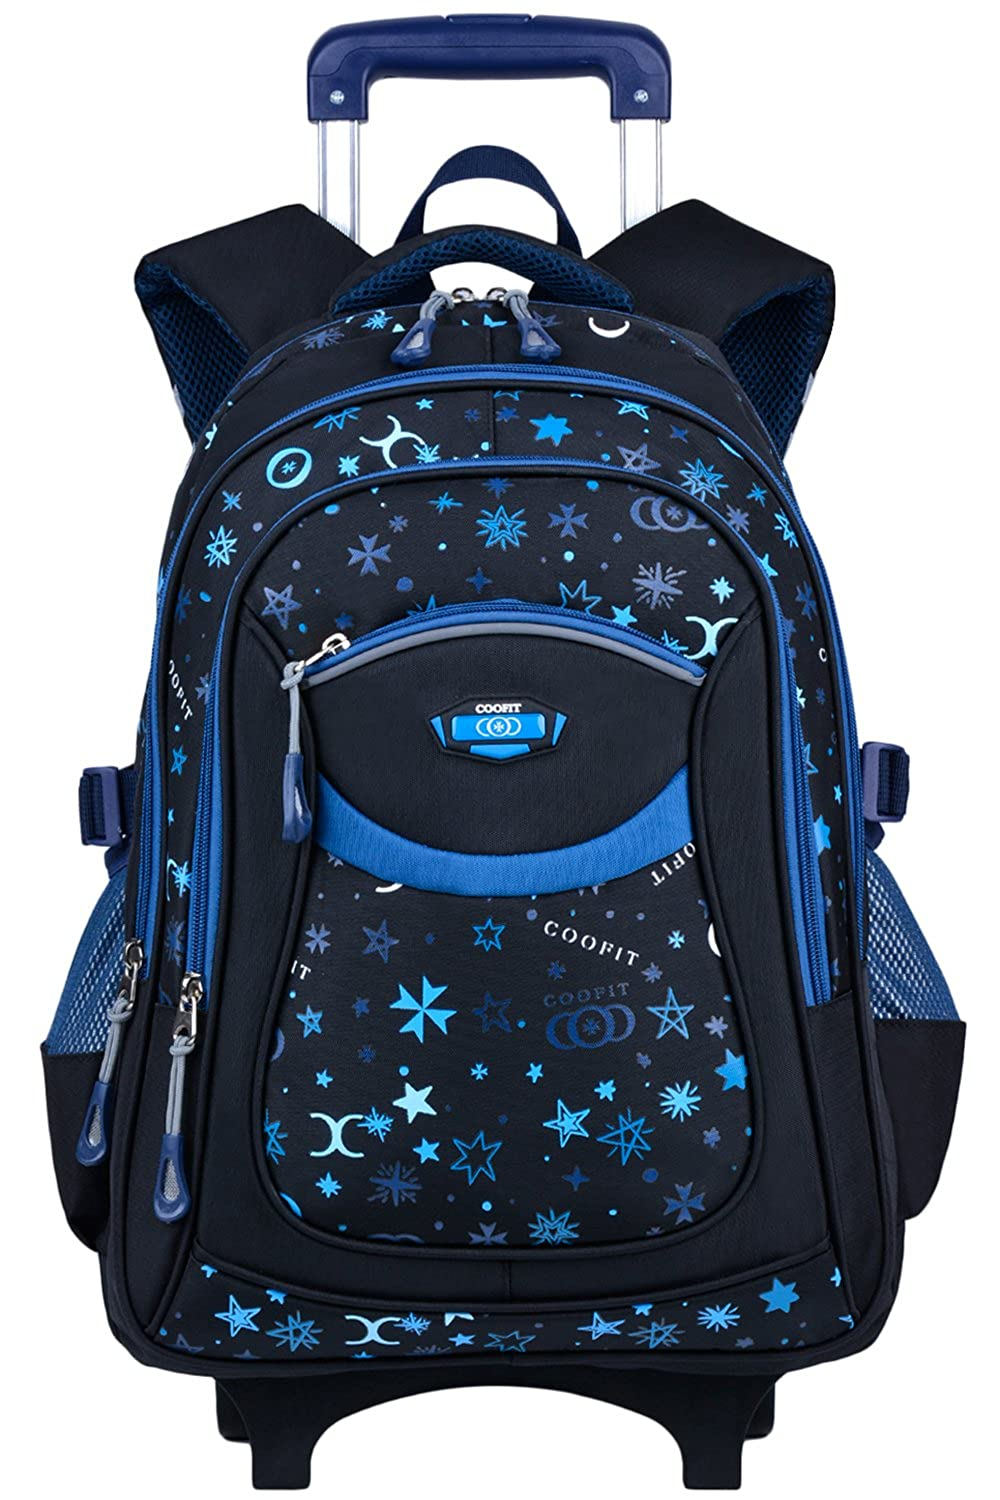 11b60d9818d0 Rolling Backpack, COOFIT Wheeled Backpack School Kids Rolling Backpack With  Wheels